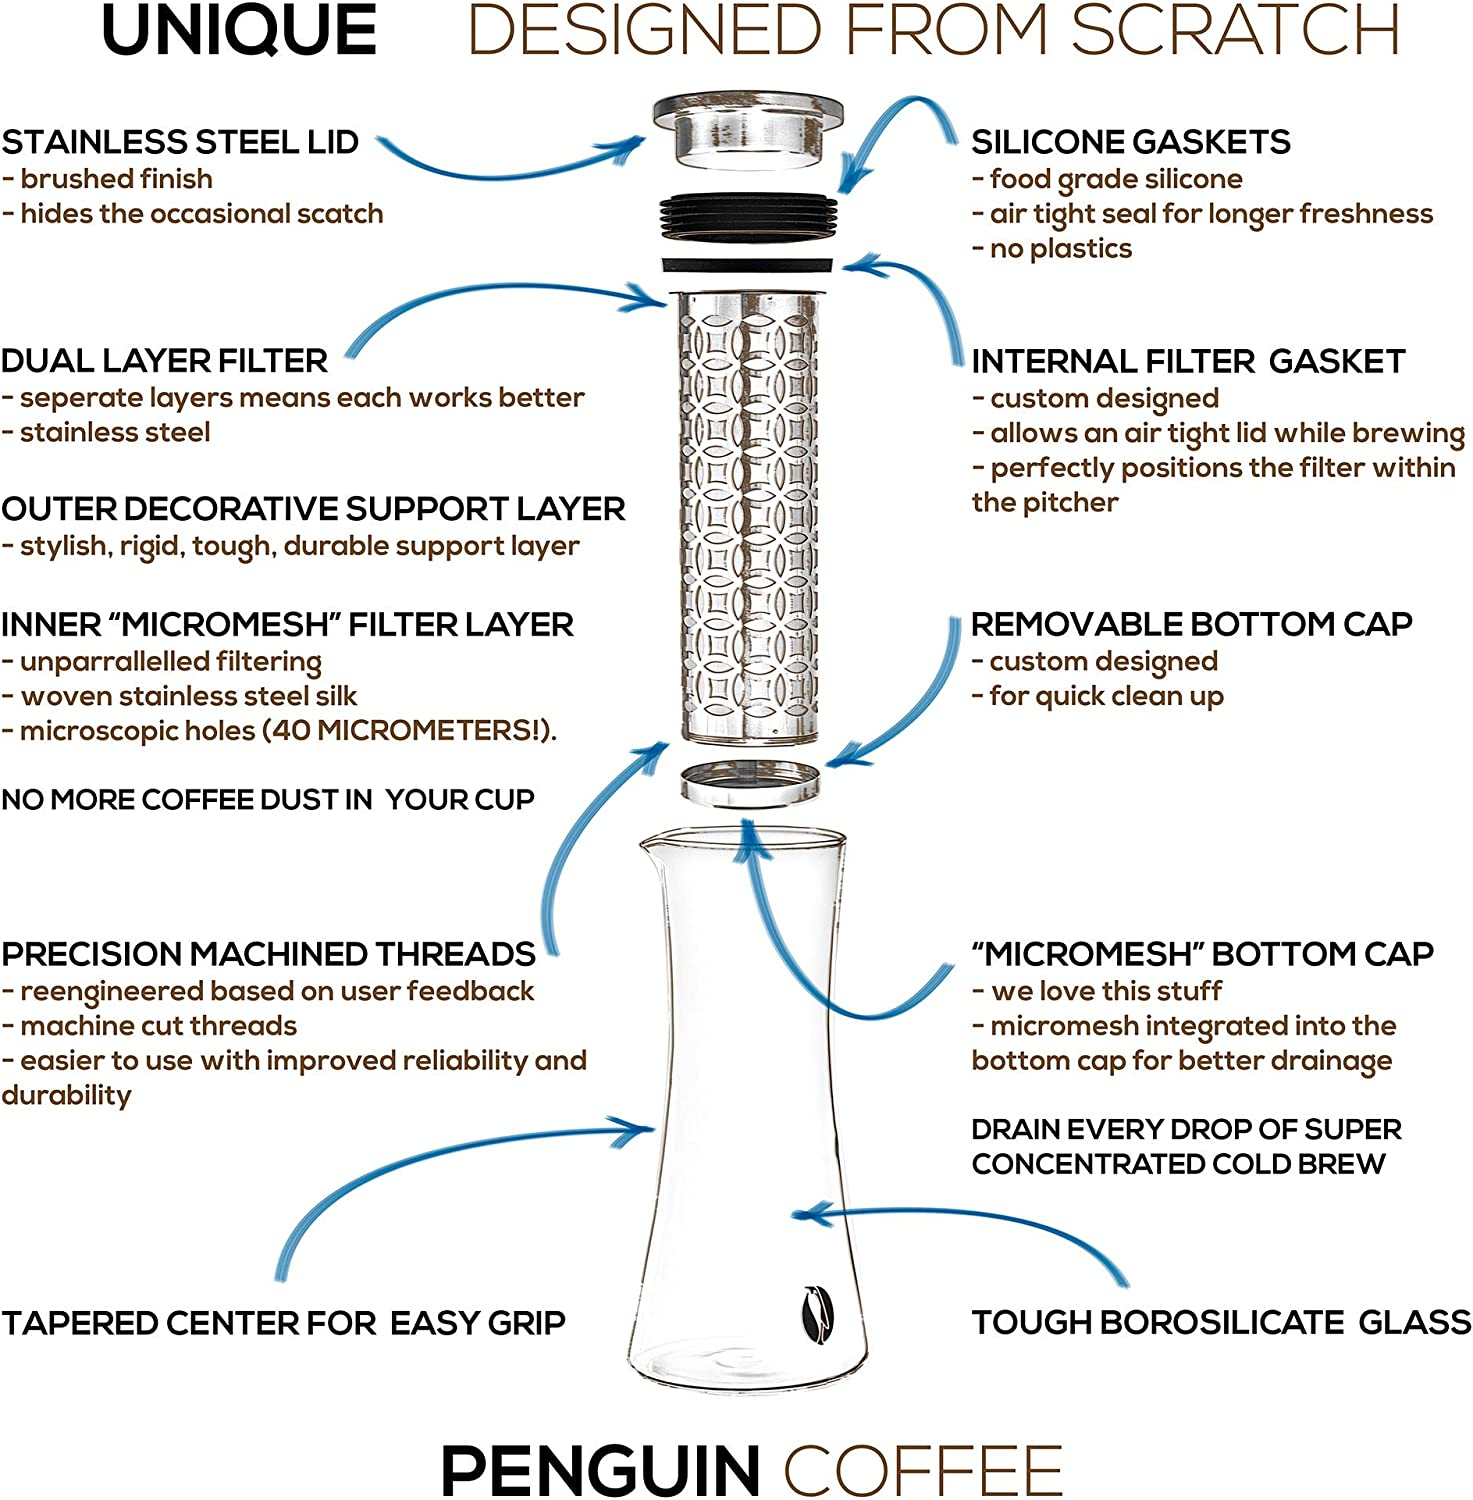 We Listened Thicker Version 2.0 Now Available PENGUIN COFFEE- Cold Brew Iced Coffee Maker 1.6 Liter- Customers Spoke Dual Layer Stainless Steel Filter w Microscopic Holes Stronger Glass Pitcher